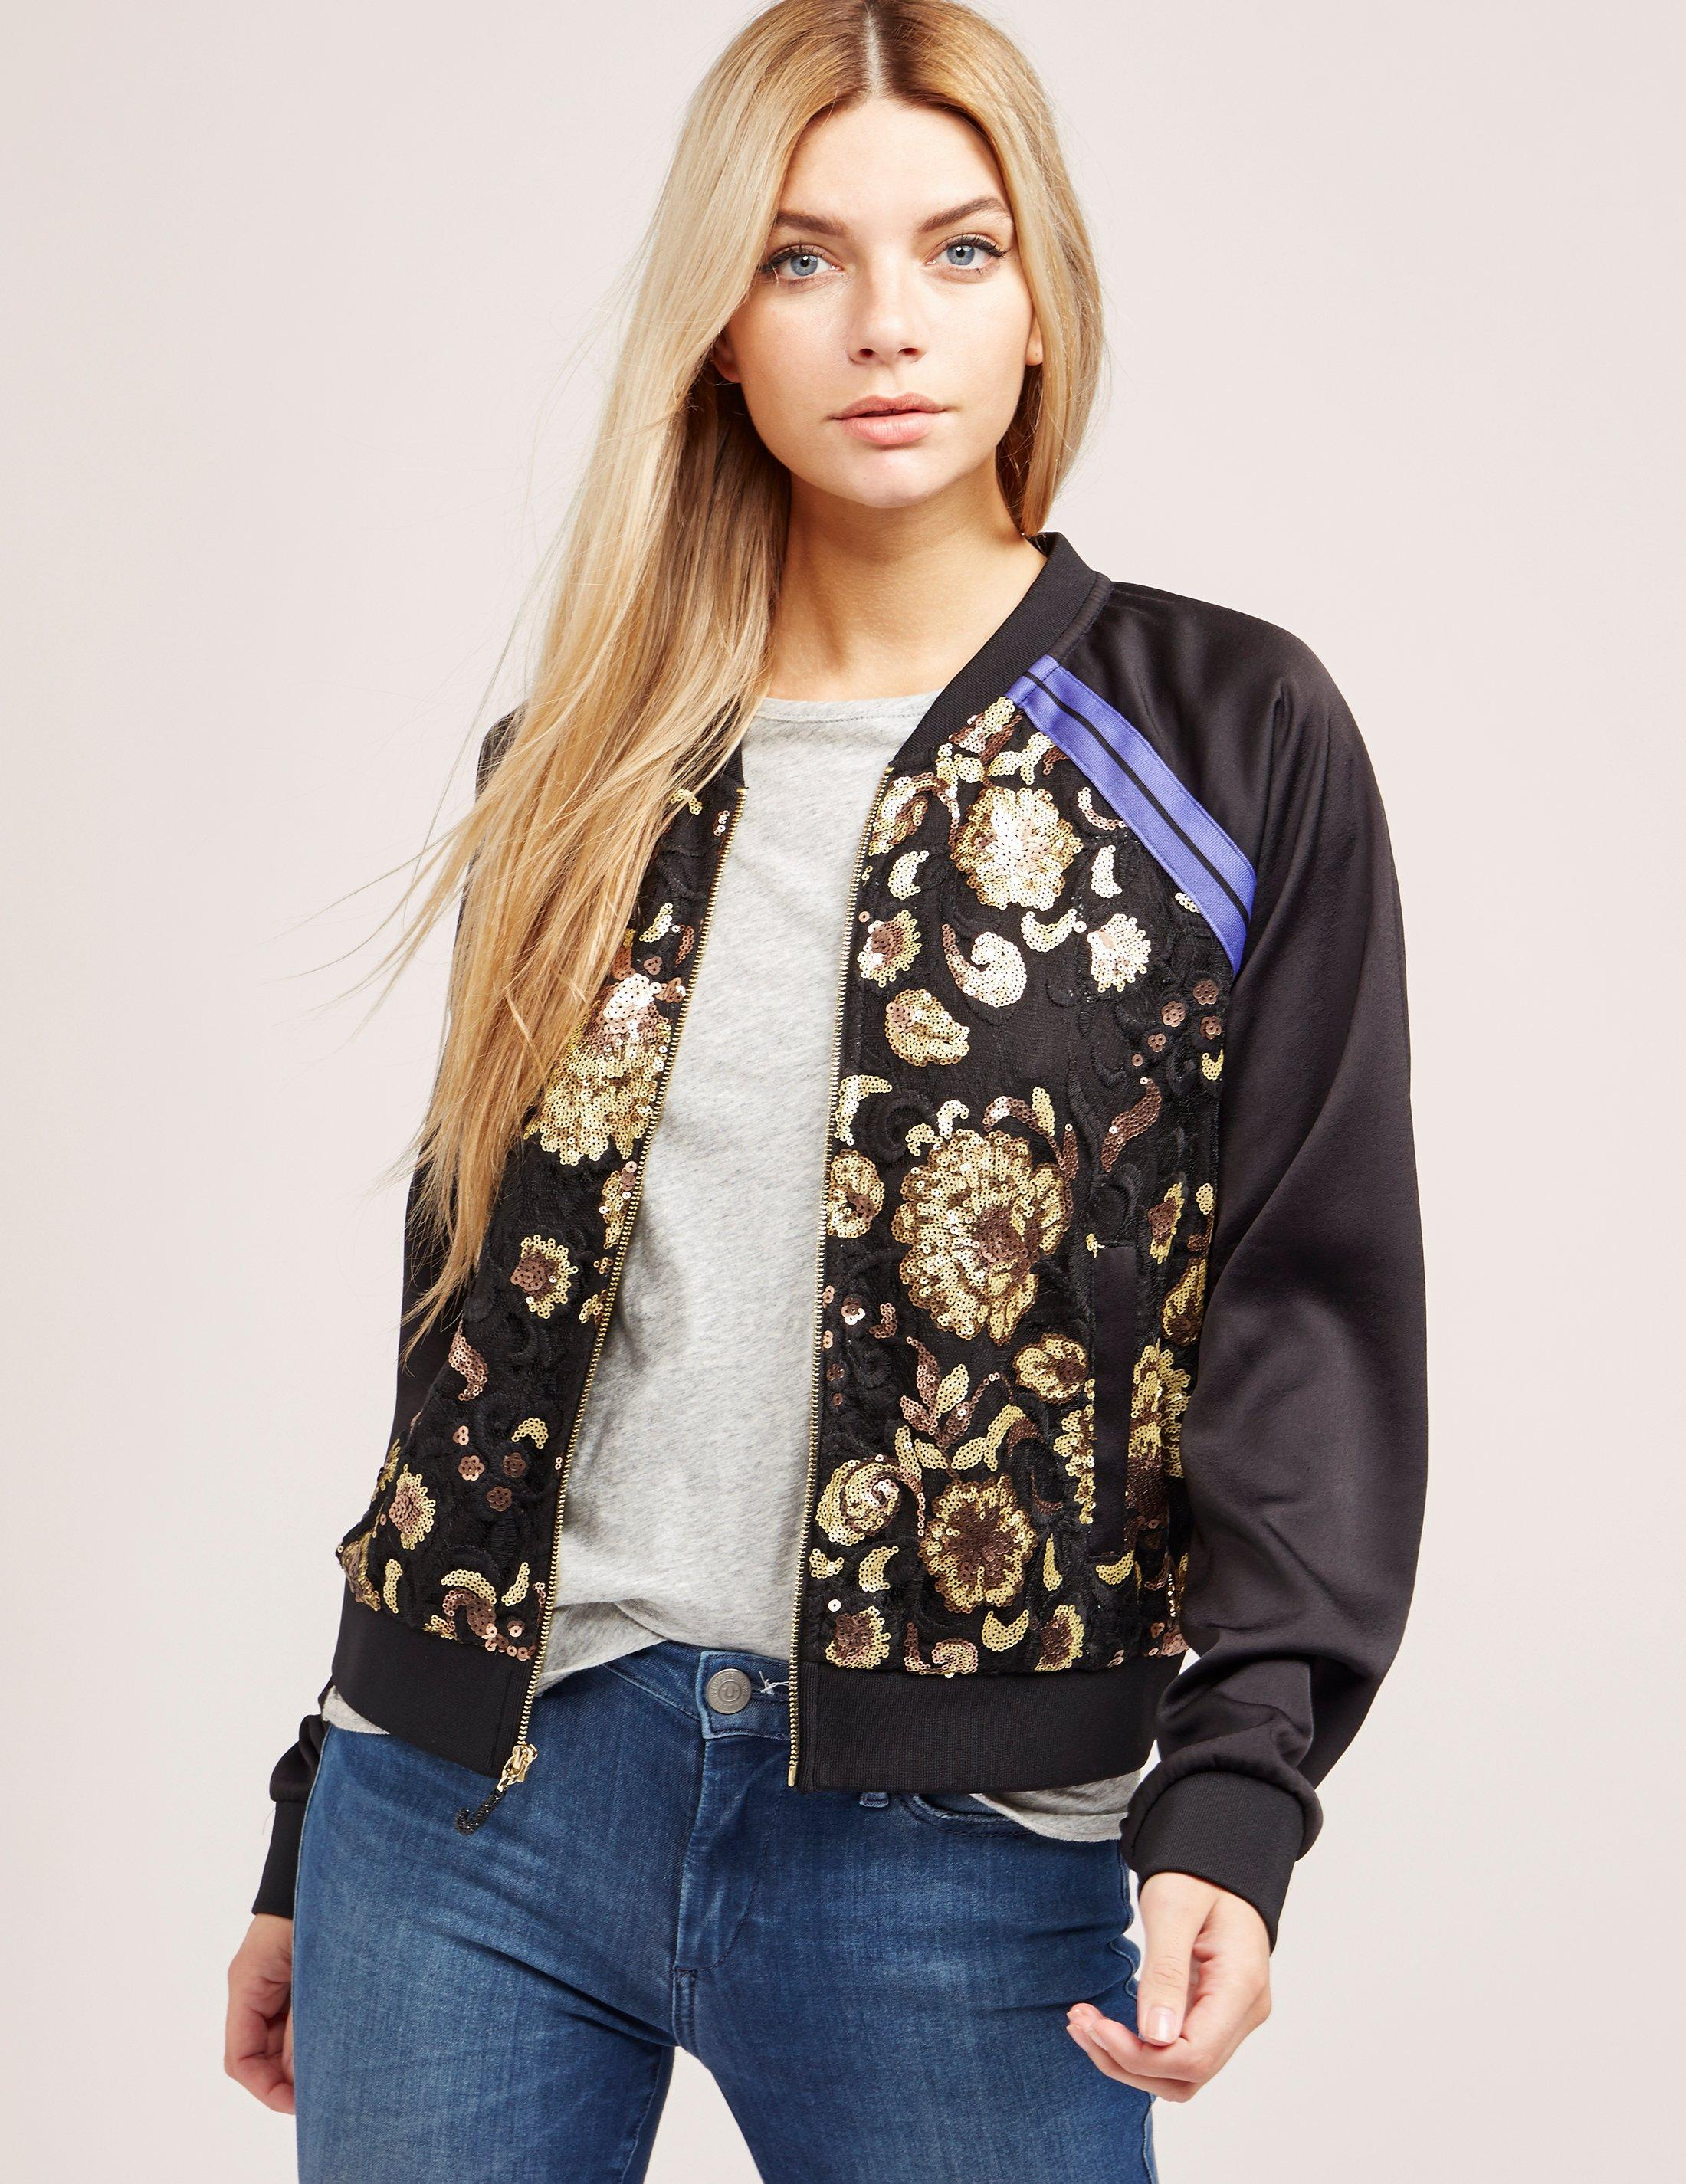 e58a173c0 Juicy Couture Womens Embroidered Bomber Jacket Black